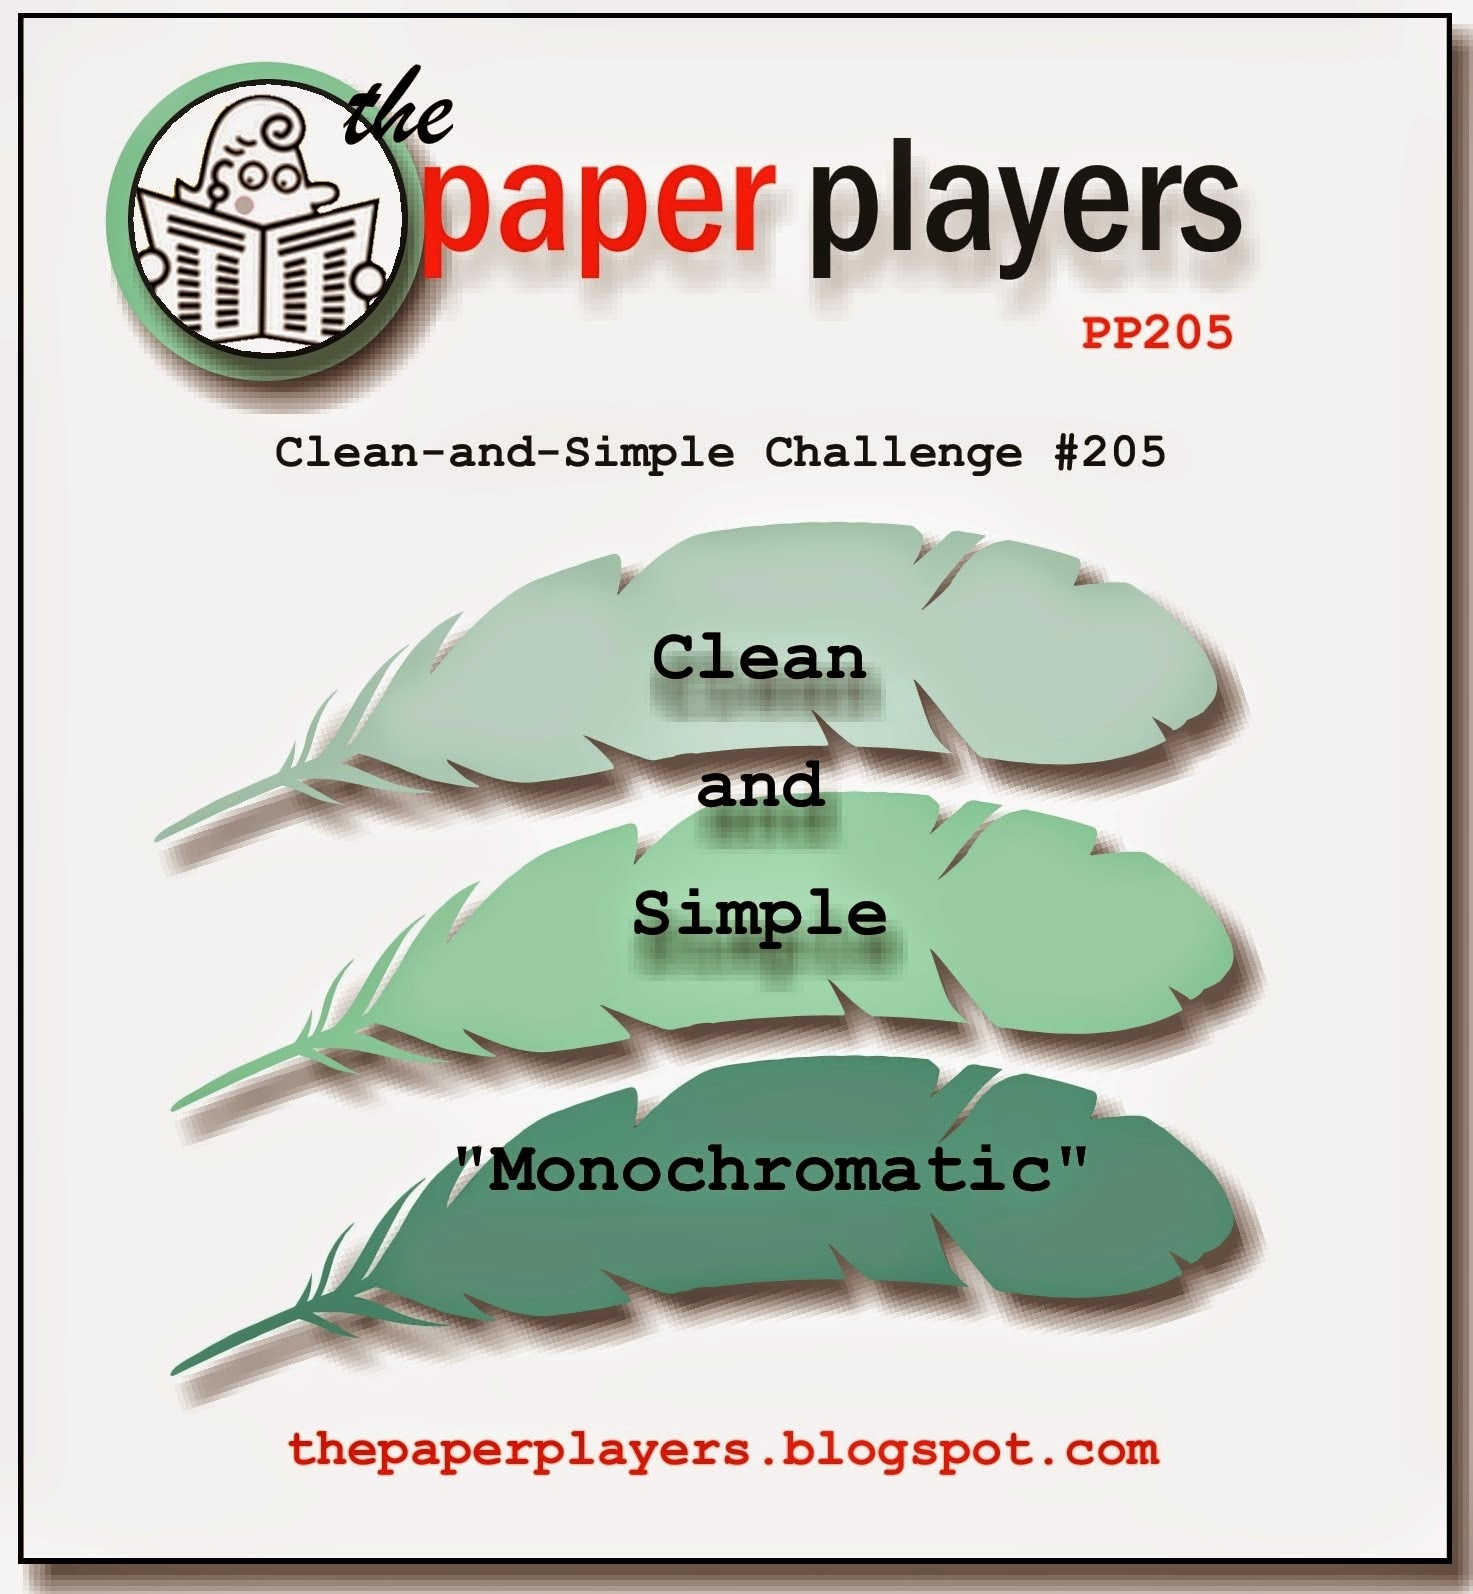 http://thepaperplayers.blogspot.com.au/2014/07/paper-players-challenge-205-sandys.html